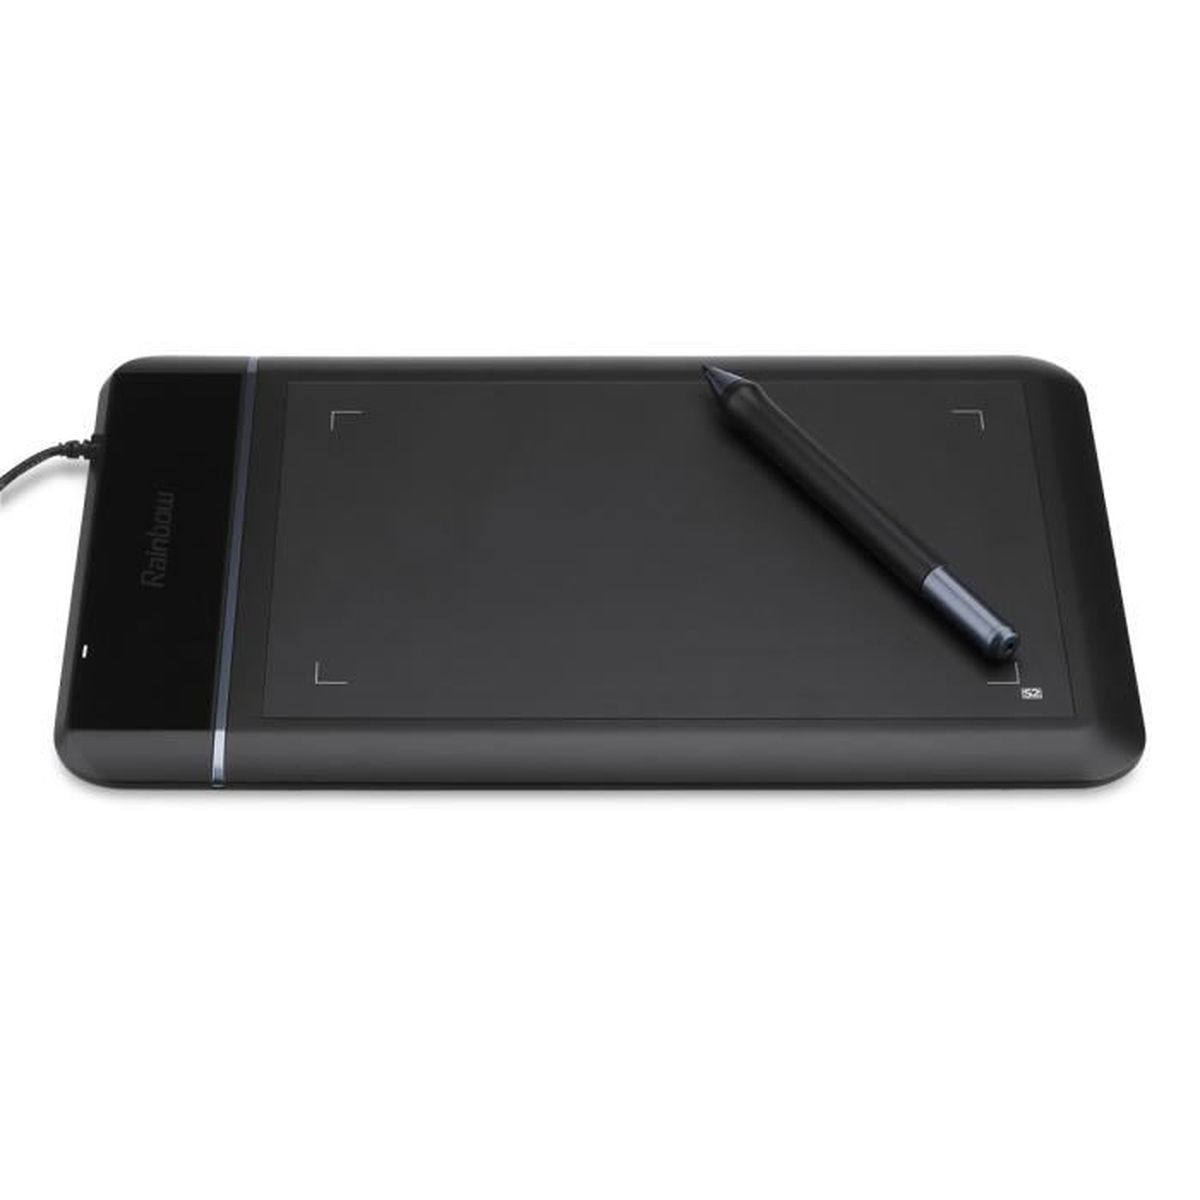 Ugee Cv720 8x5 Tablette A Dessin Graphique Intelligente Avec Stylet